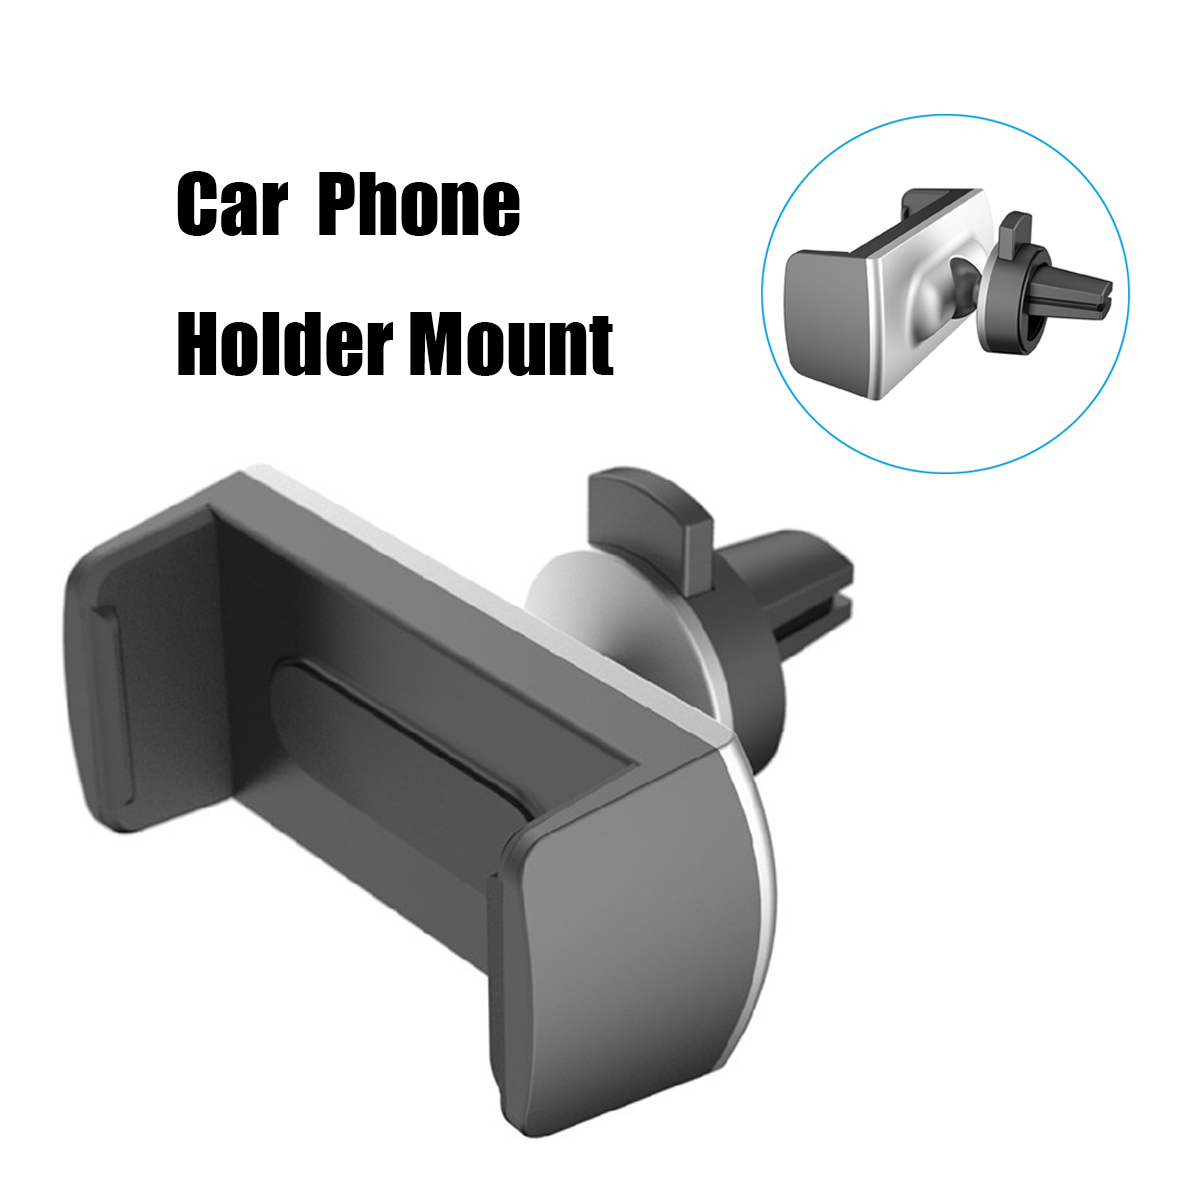 Alightstone Car Air Vent Holder Mount Phone Clip Outlet Bracket Stand for iPhone X 8 Samsung S8